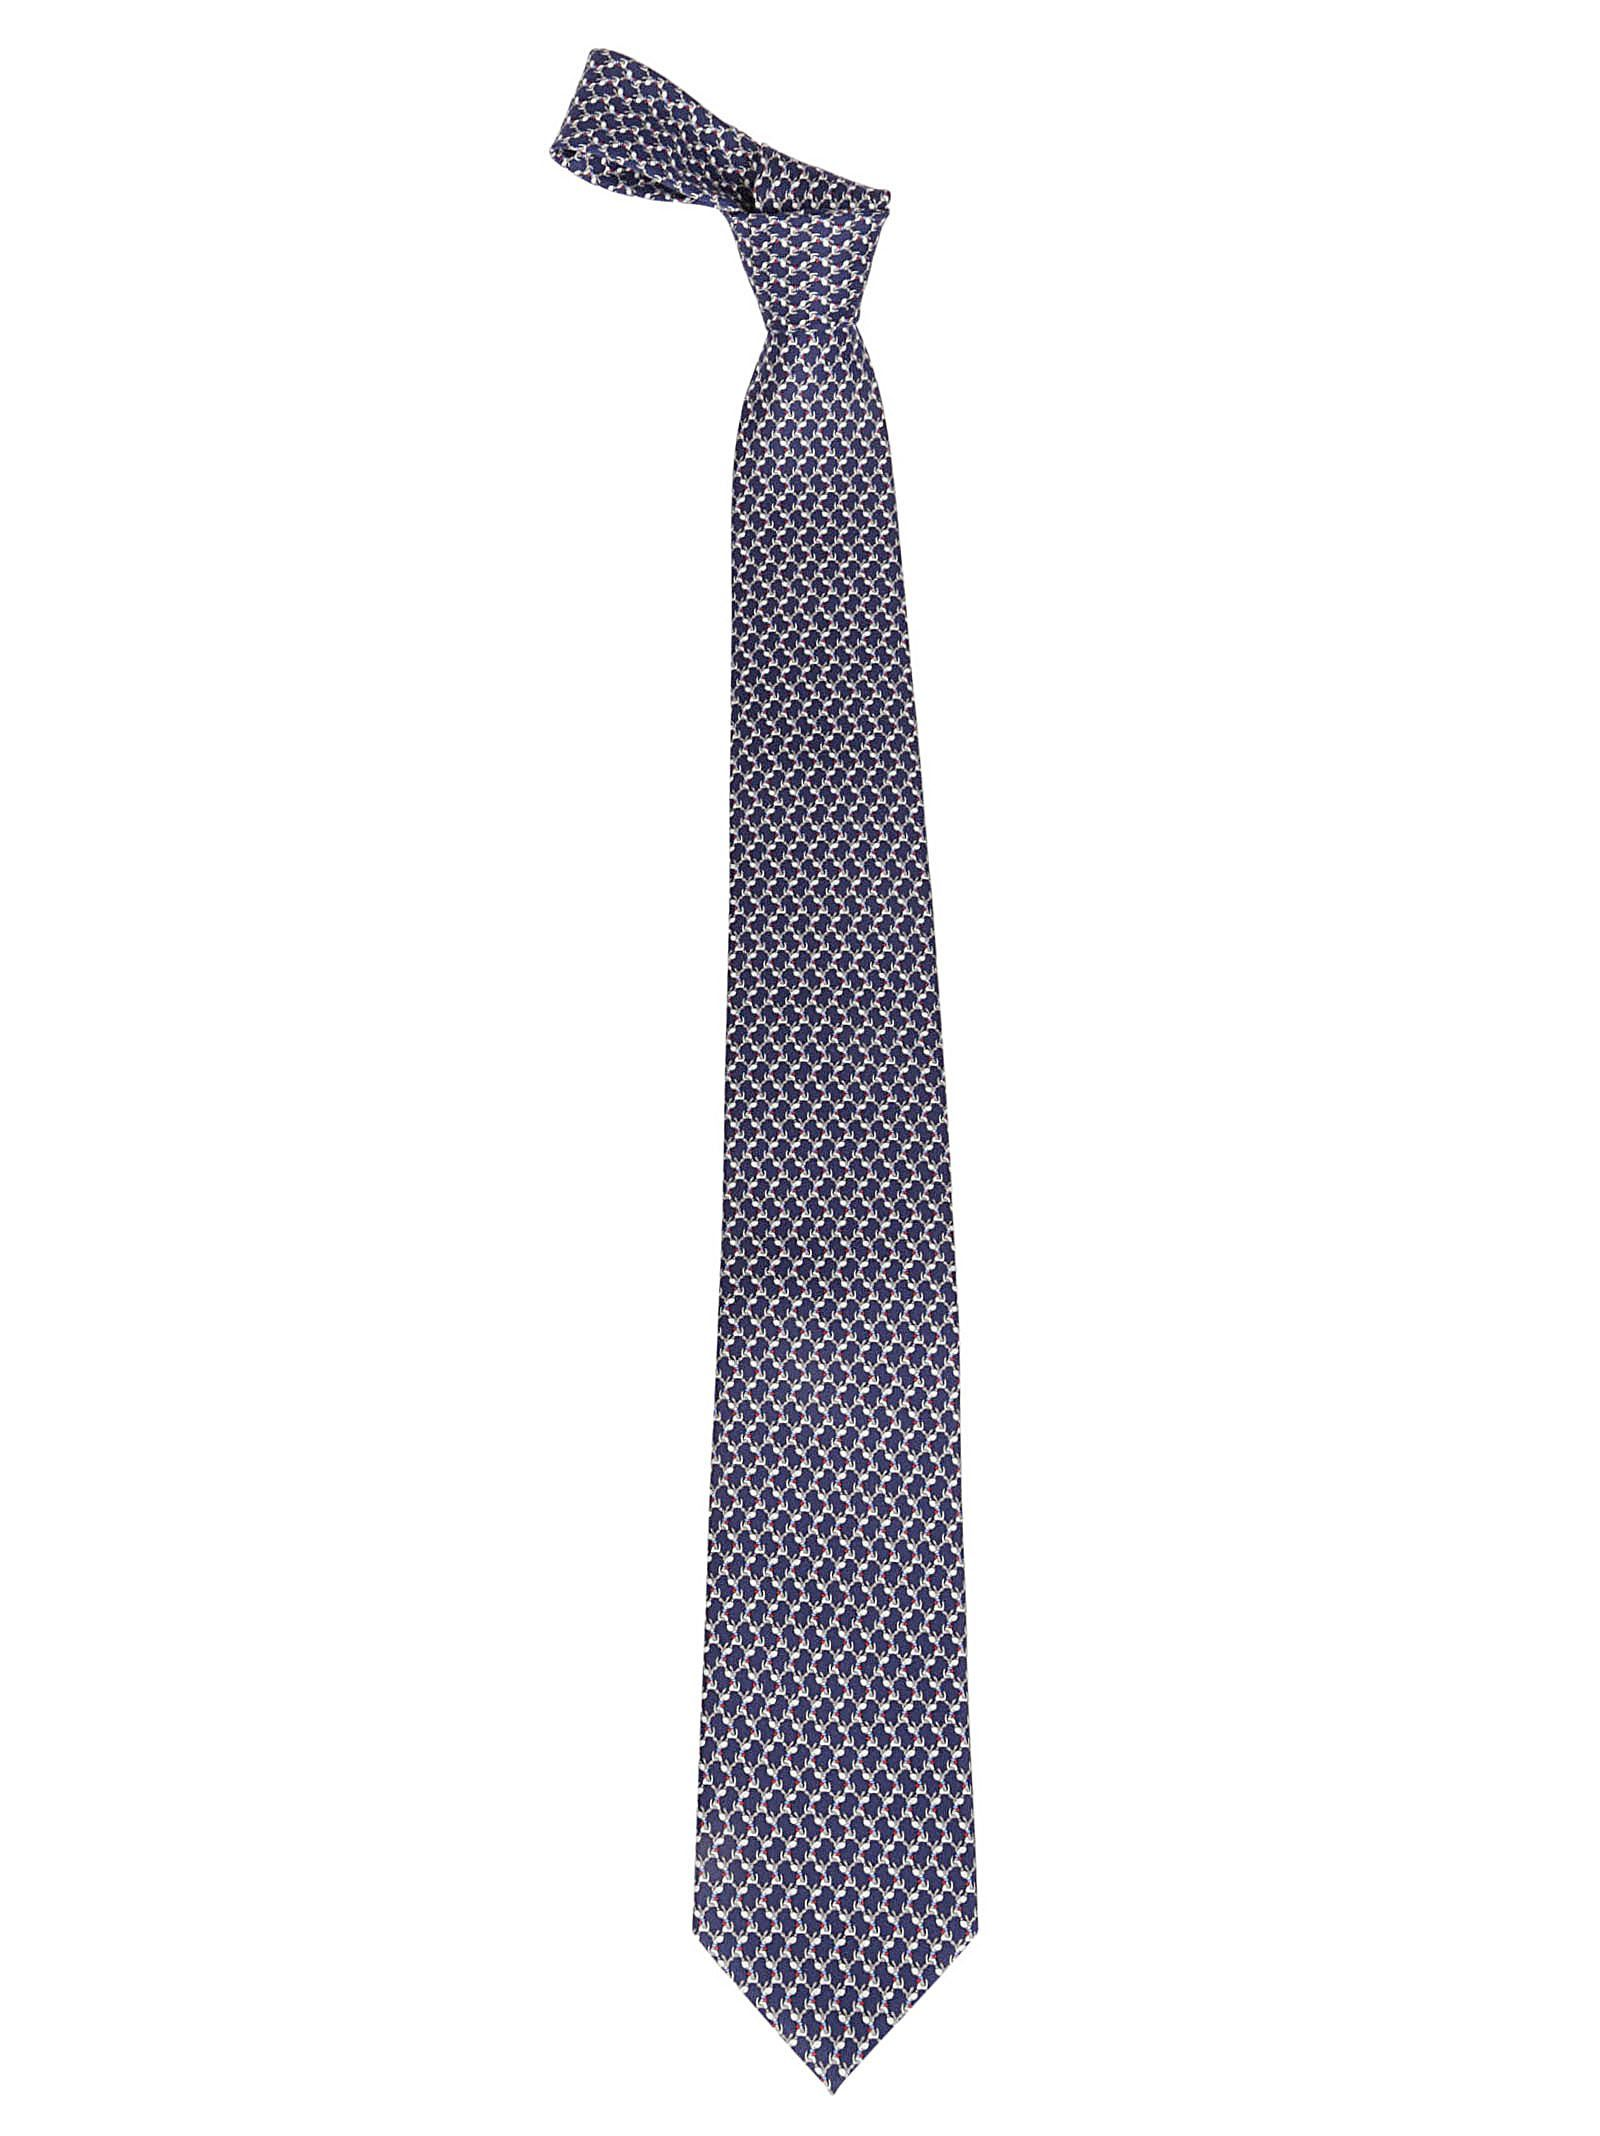 SALVATORE FERRAGAMO MEN'S 0719234 BLUE SILK TIE